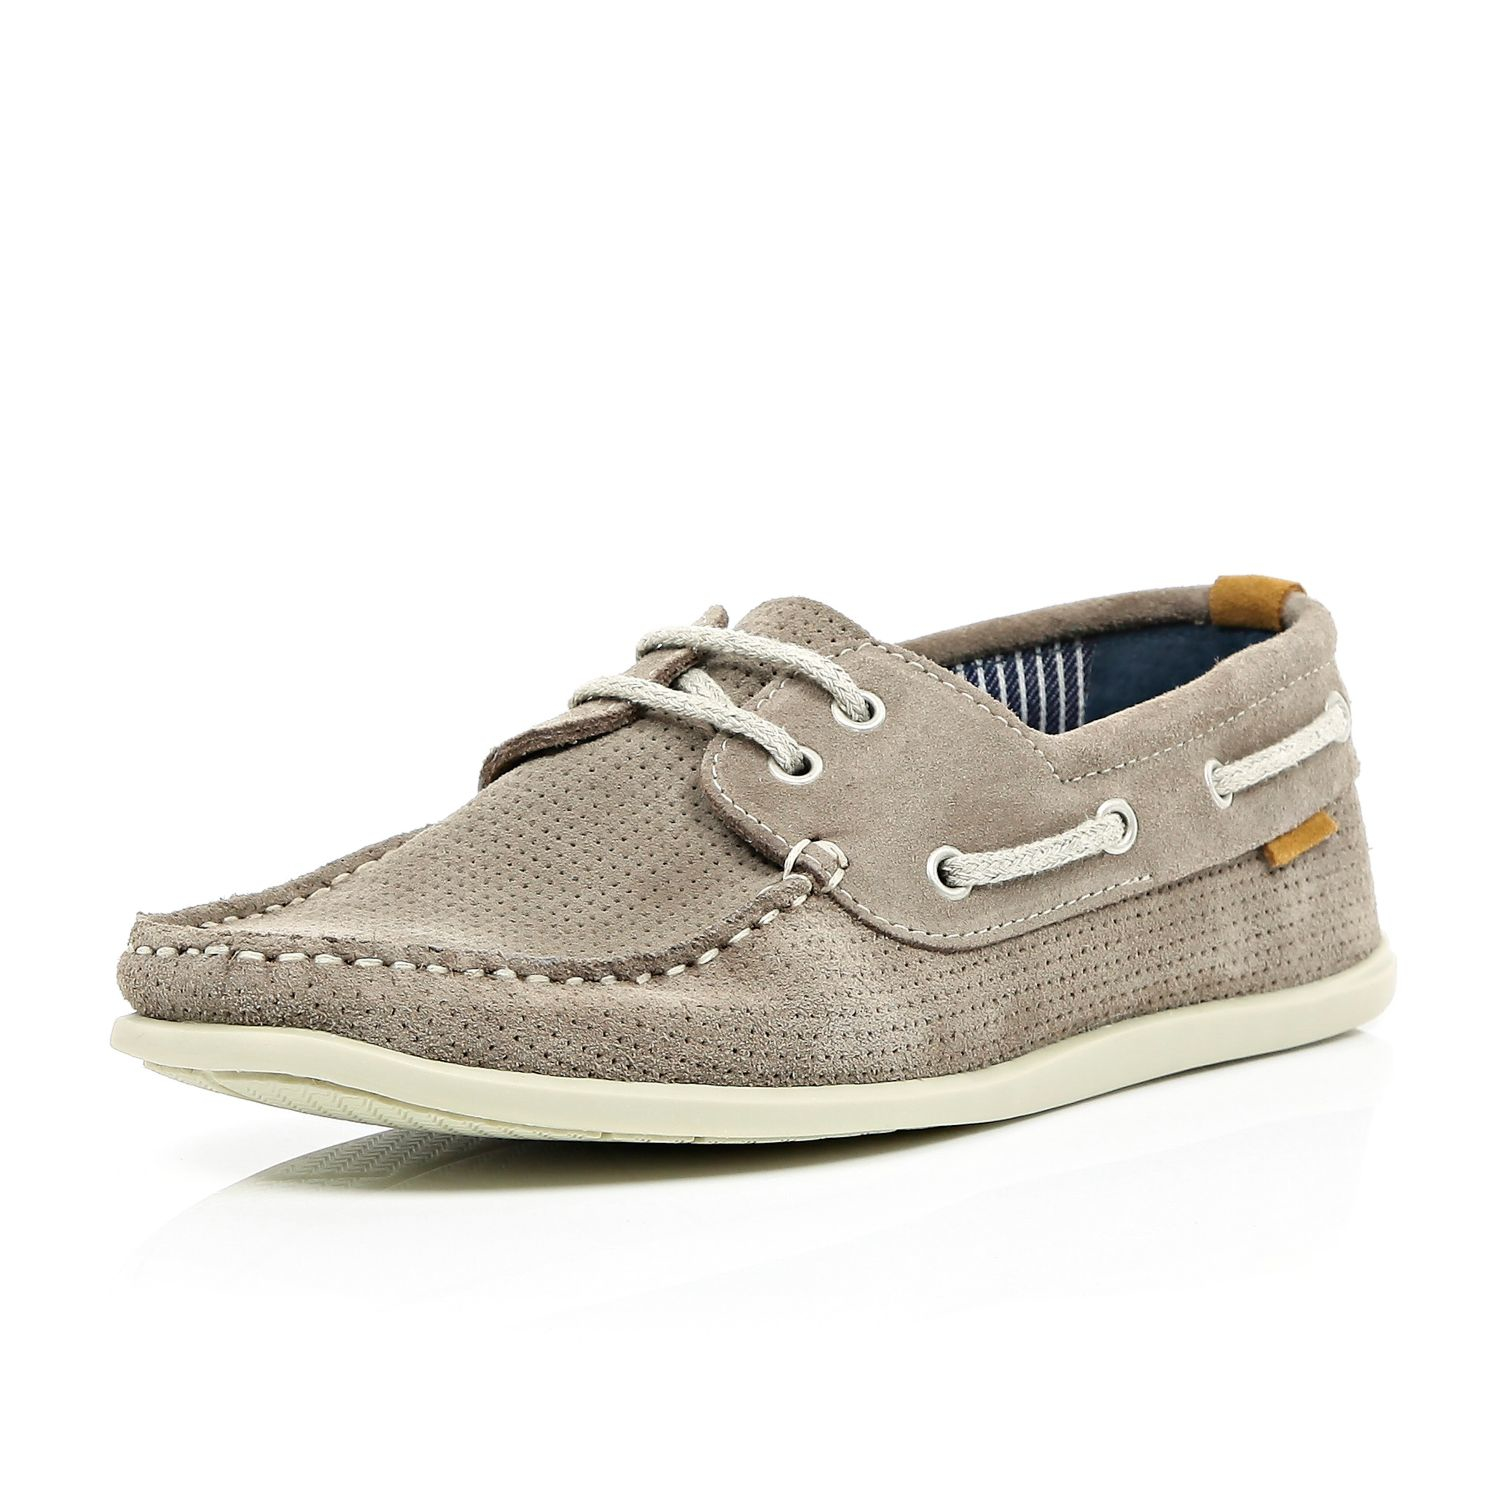 Outlet Locations Sale Online Shopping Discounts Online Mens Grey suede boat shoes River Island Sale 2018 Unisex Free Shipping YaScQ